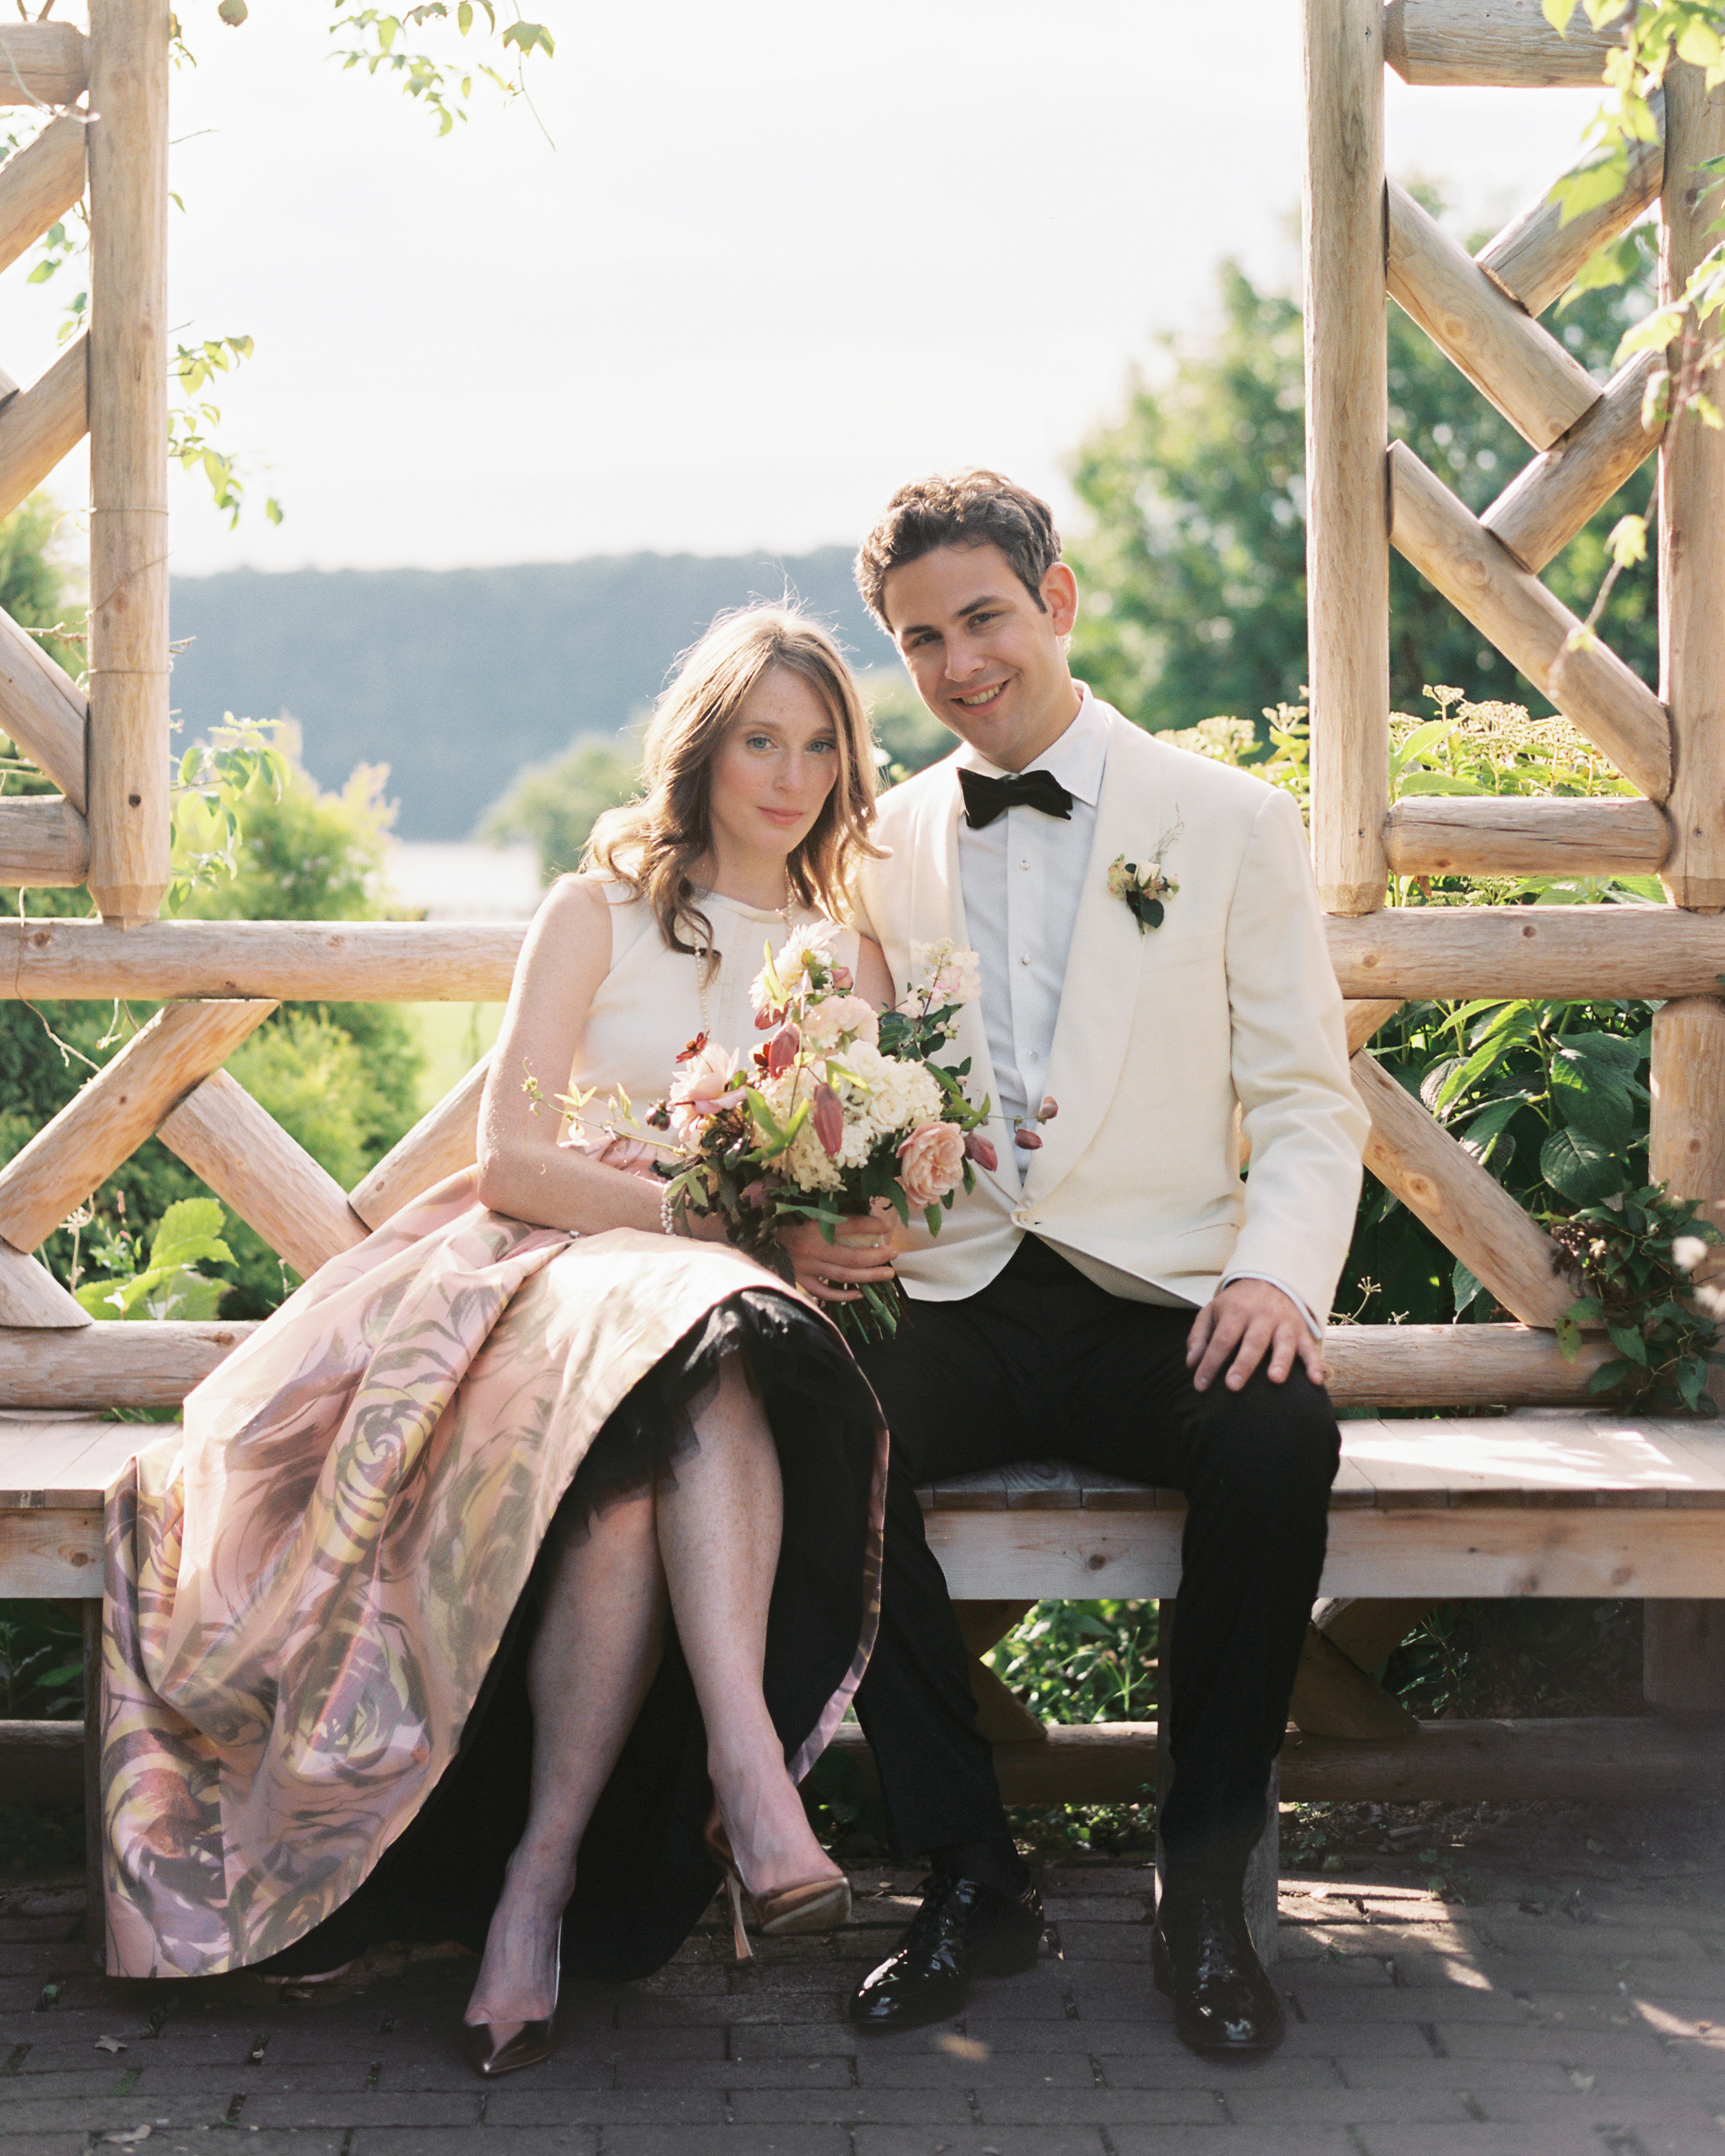 emily-marco-wedding-seated-portrit-0414.jpg